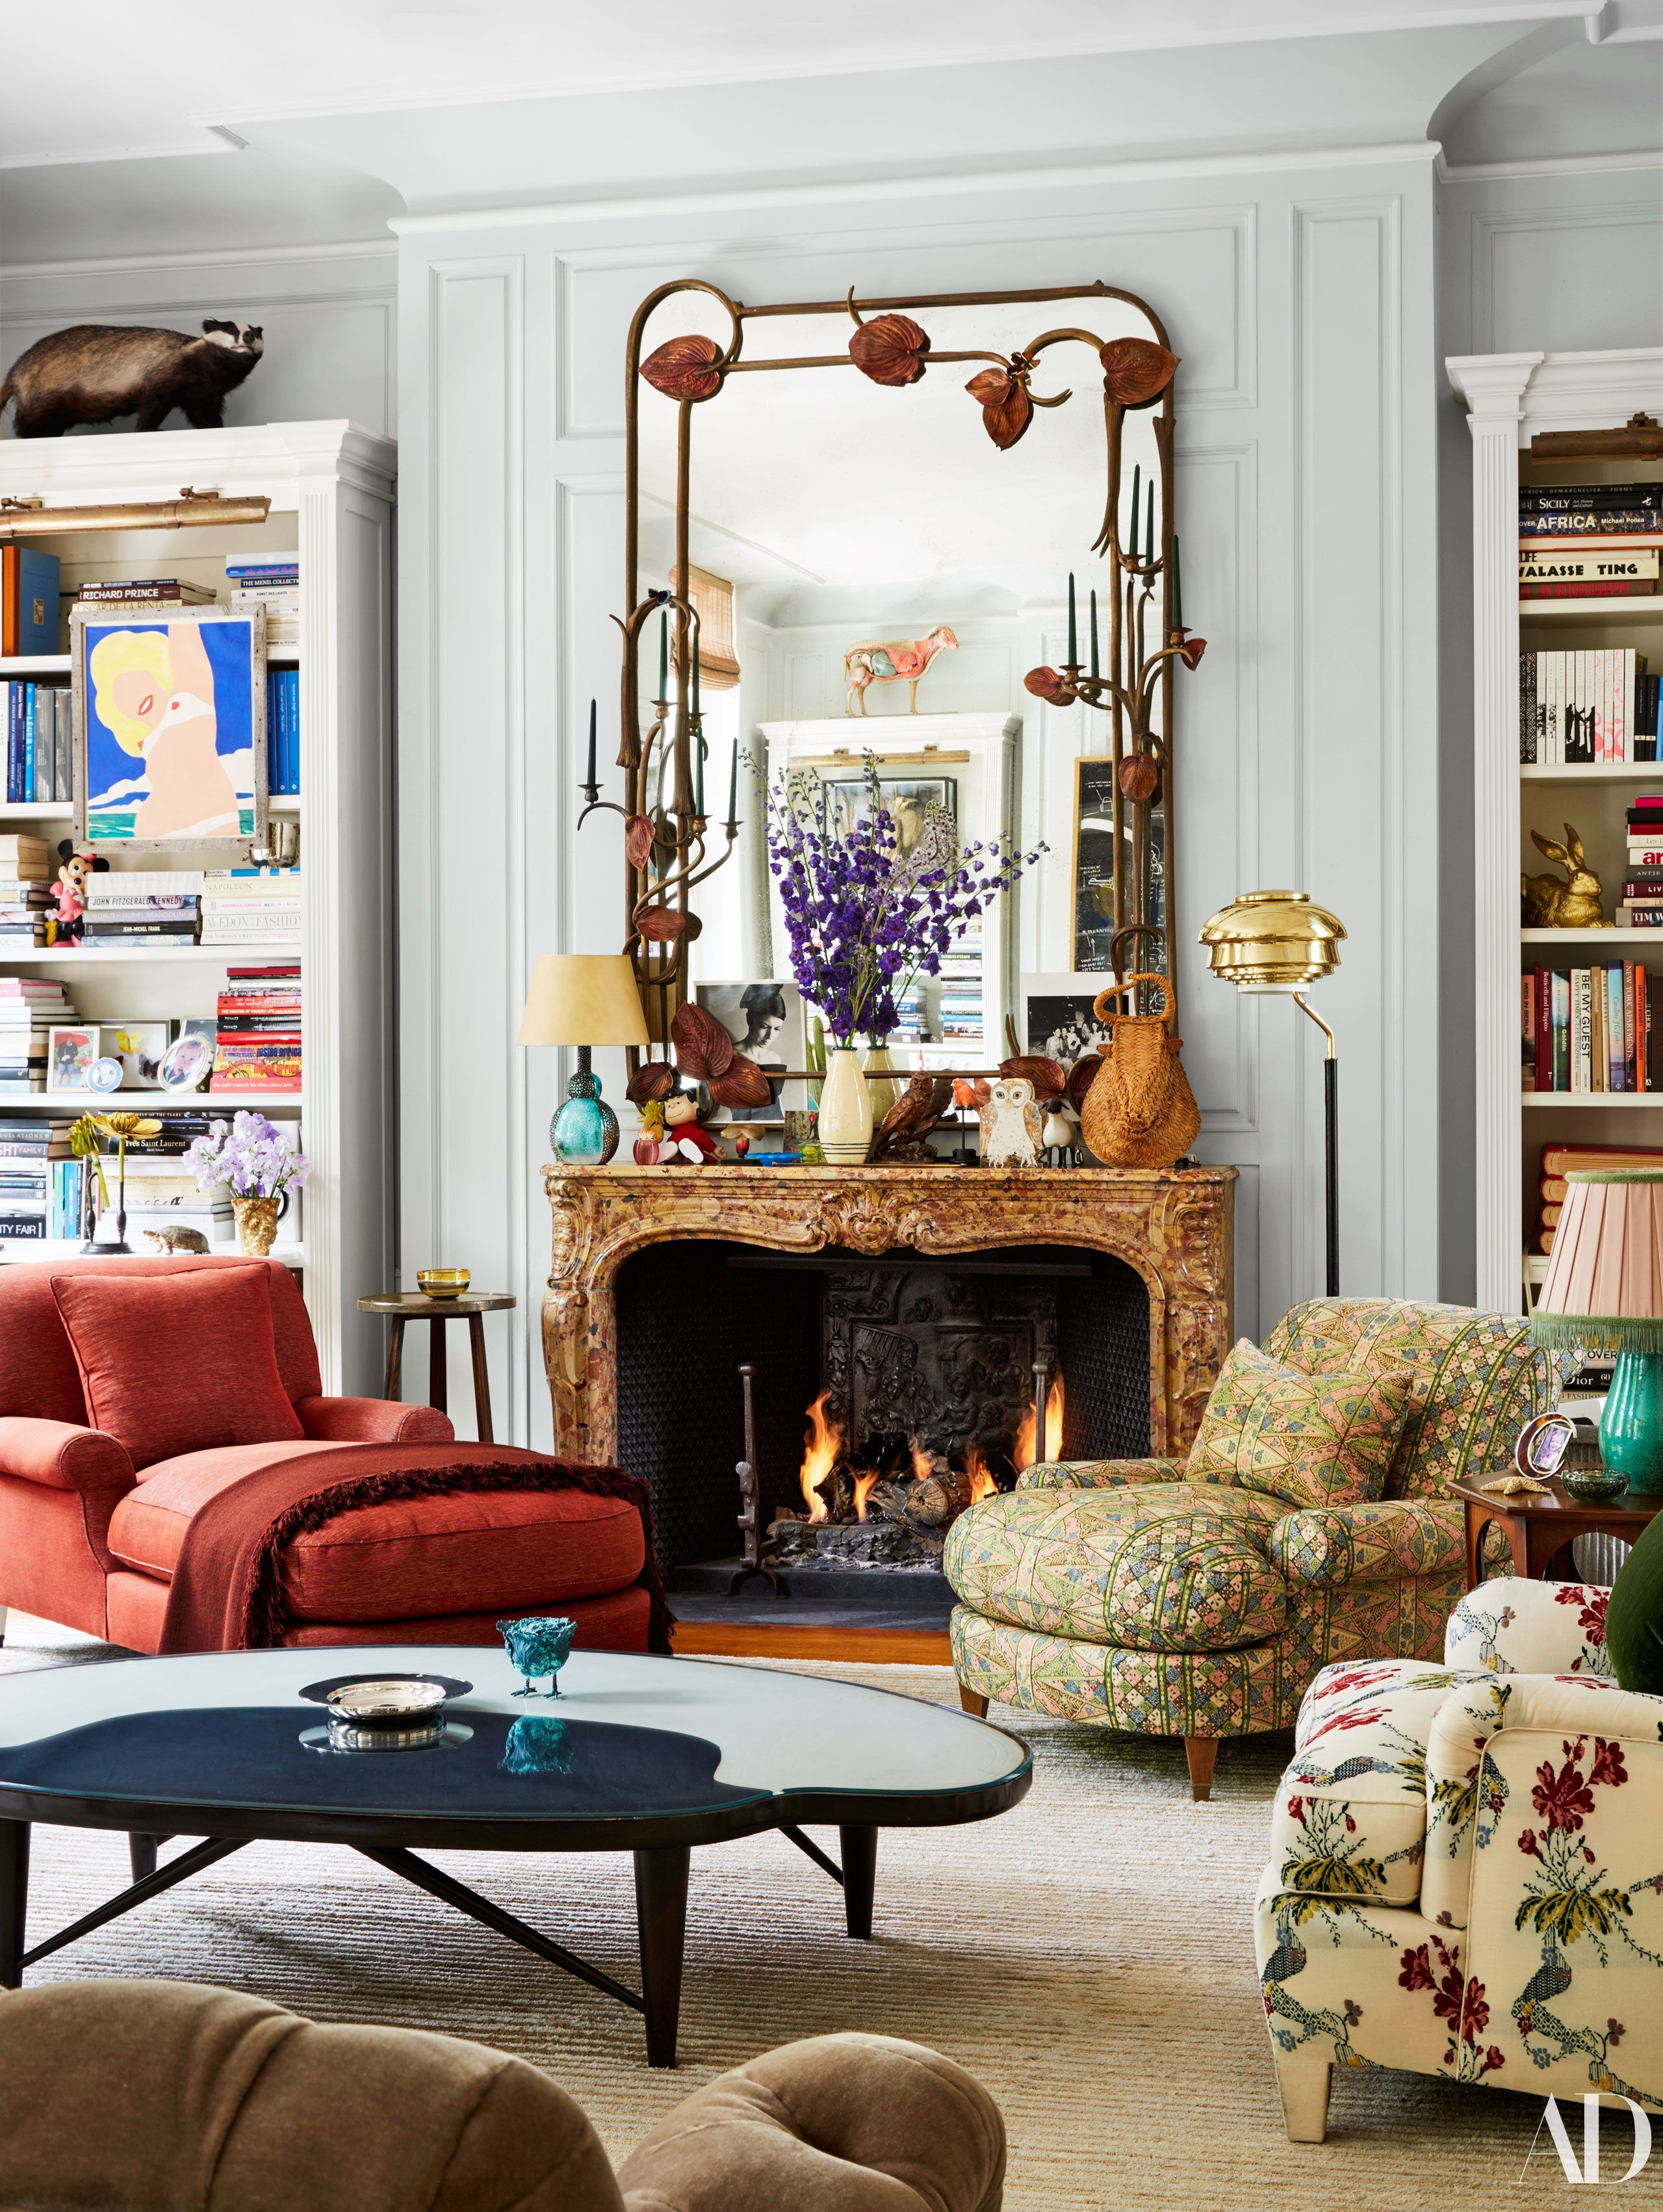 A Look Inside The Century Old Home Vintage Home Decor Home Decor Home Interior Design Old home living room ideas